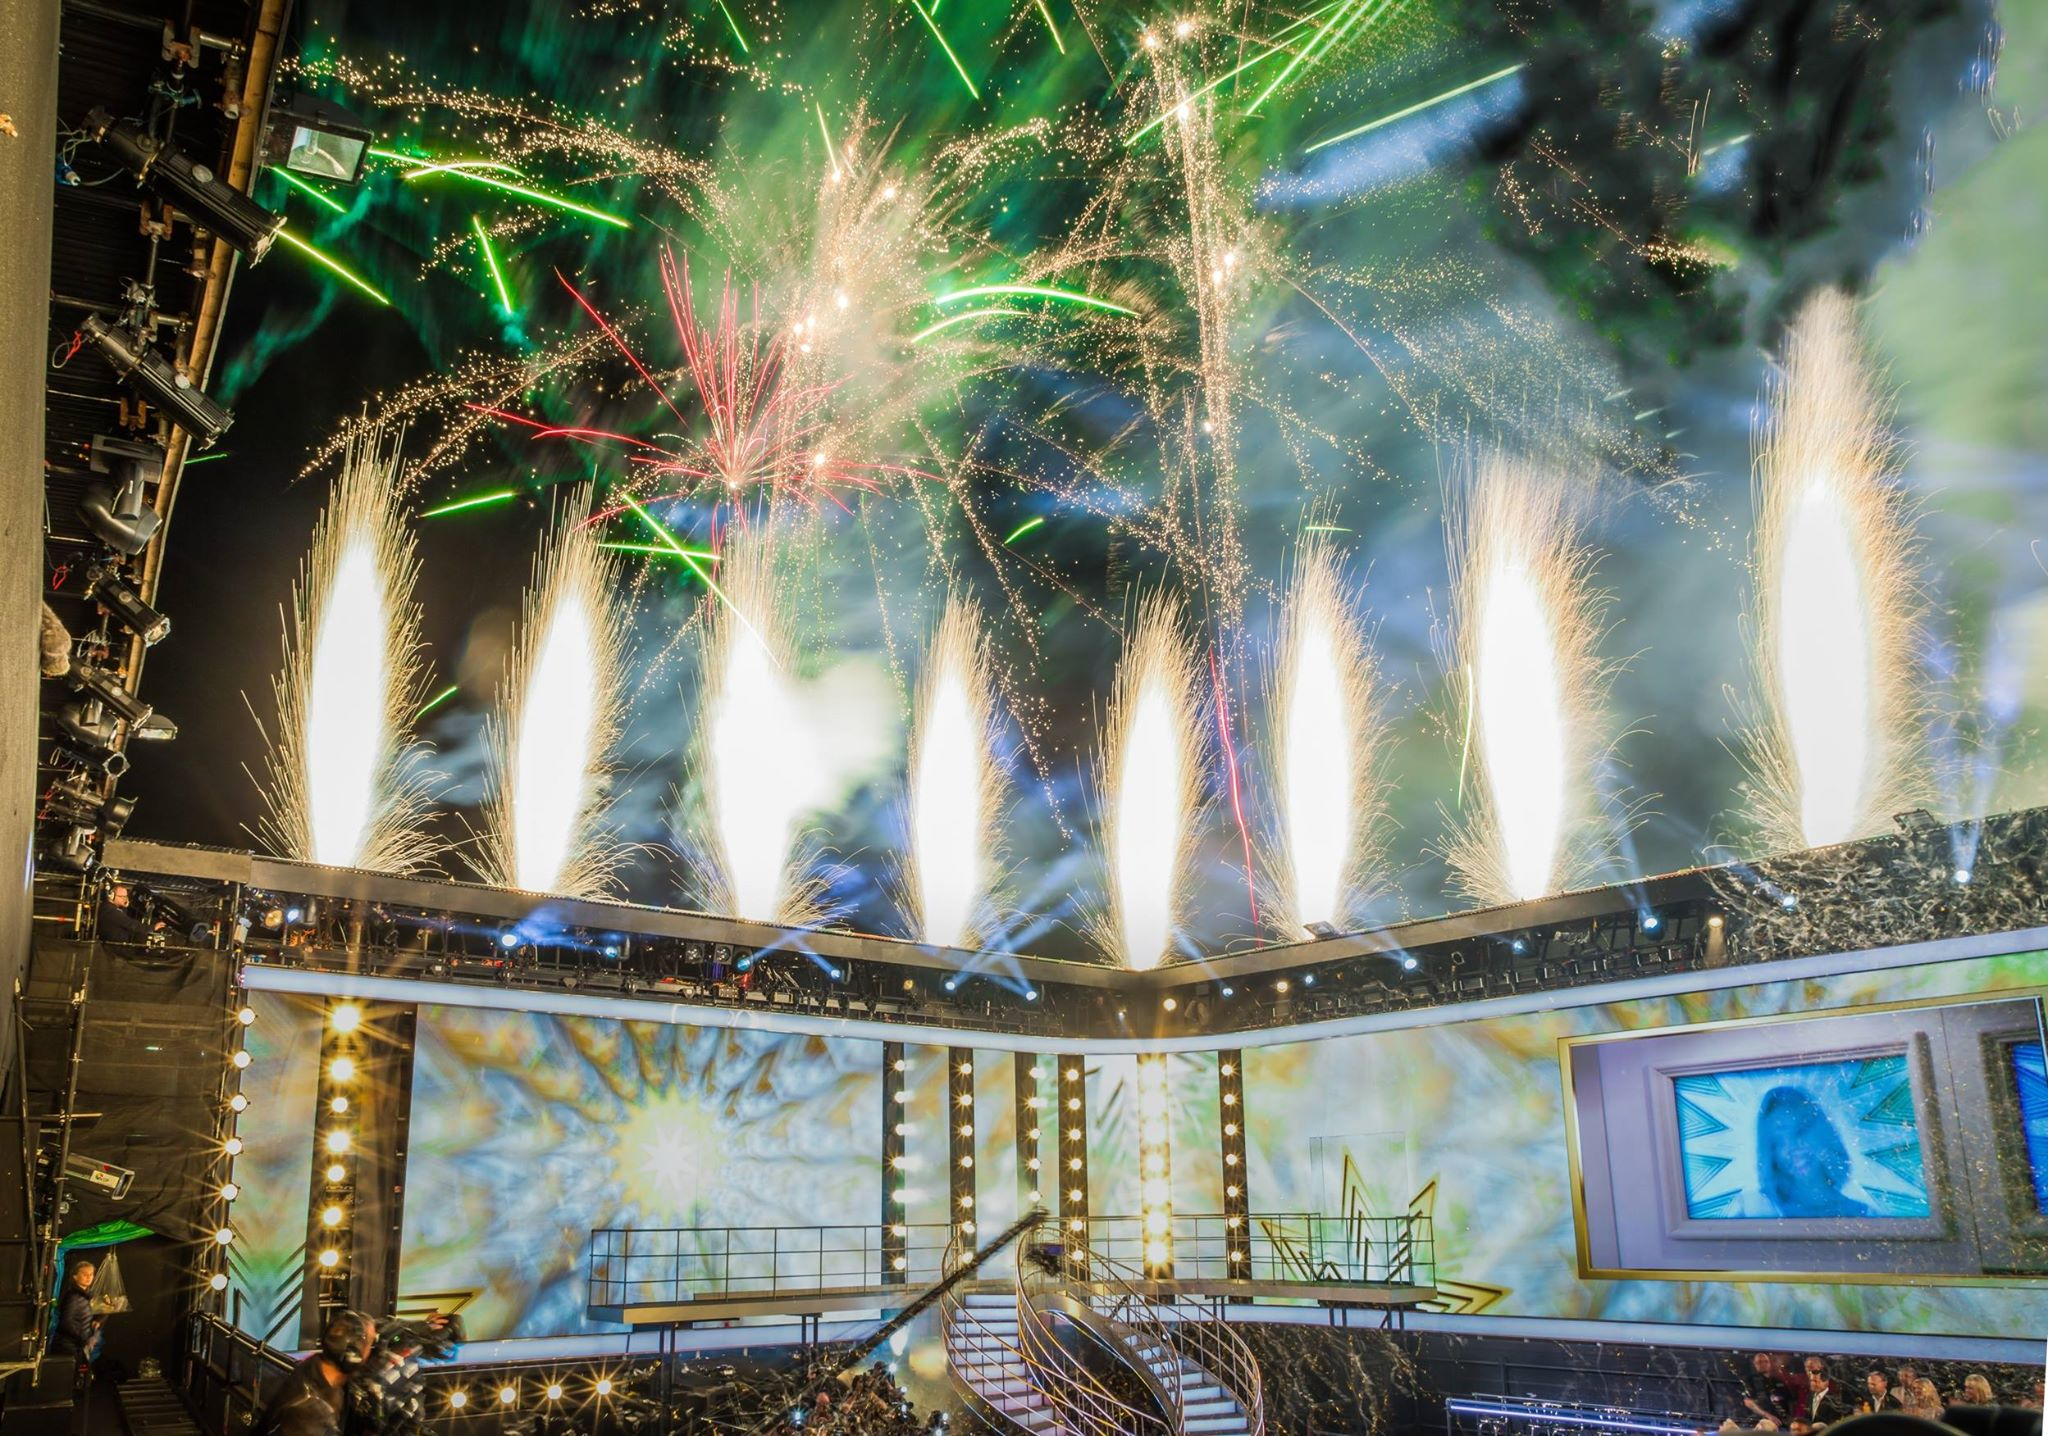 Big Brother - Continuous product development, new firing locations, the latest technology and our excellent relationship with the show producers means the fireworks continually evolve. Every winner since 2002 has enjoyed a spectacular display from Star Fireworks.Contact us for T.V. fireworks.